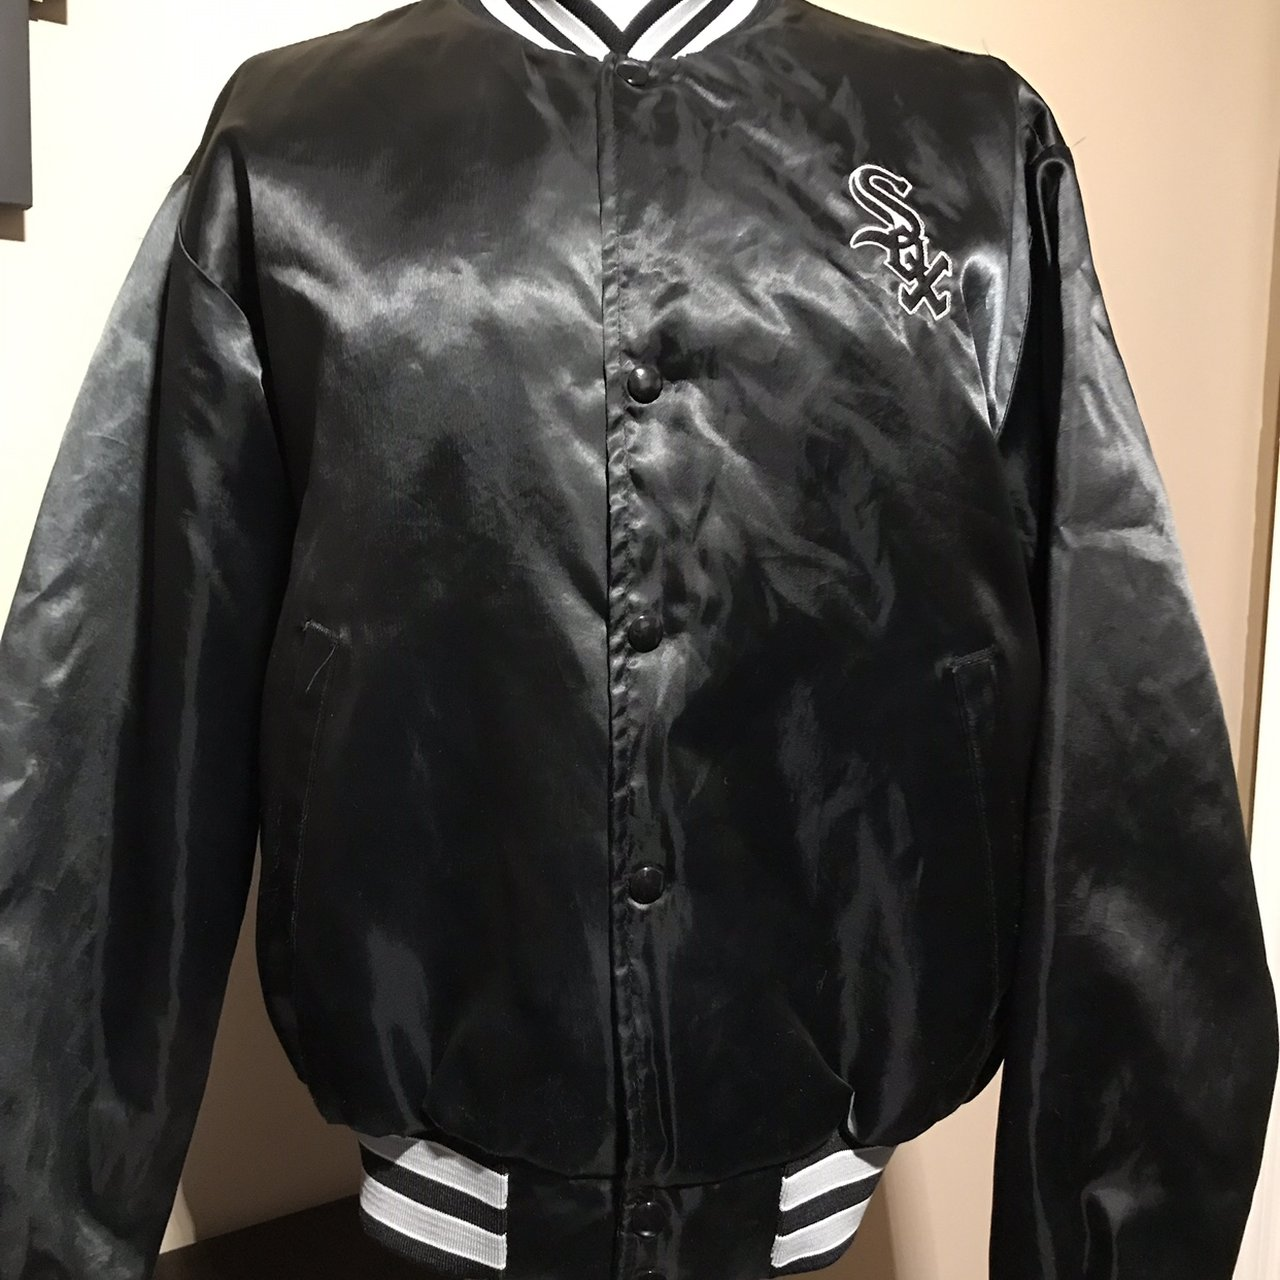 b6a744c9a314 Vintage swingster Chicago White Sox satin jacket Preowned - Depop